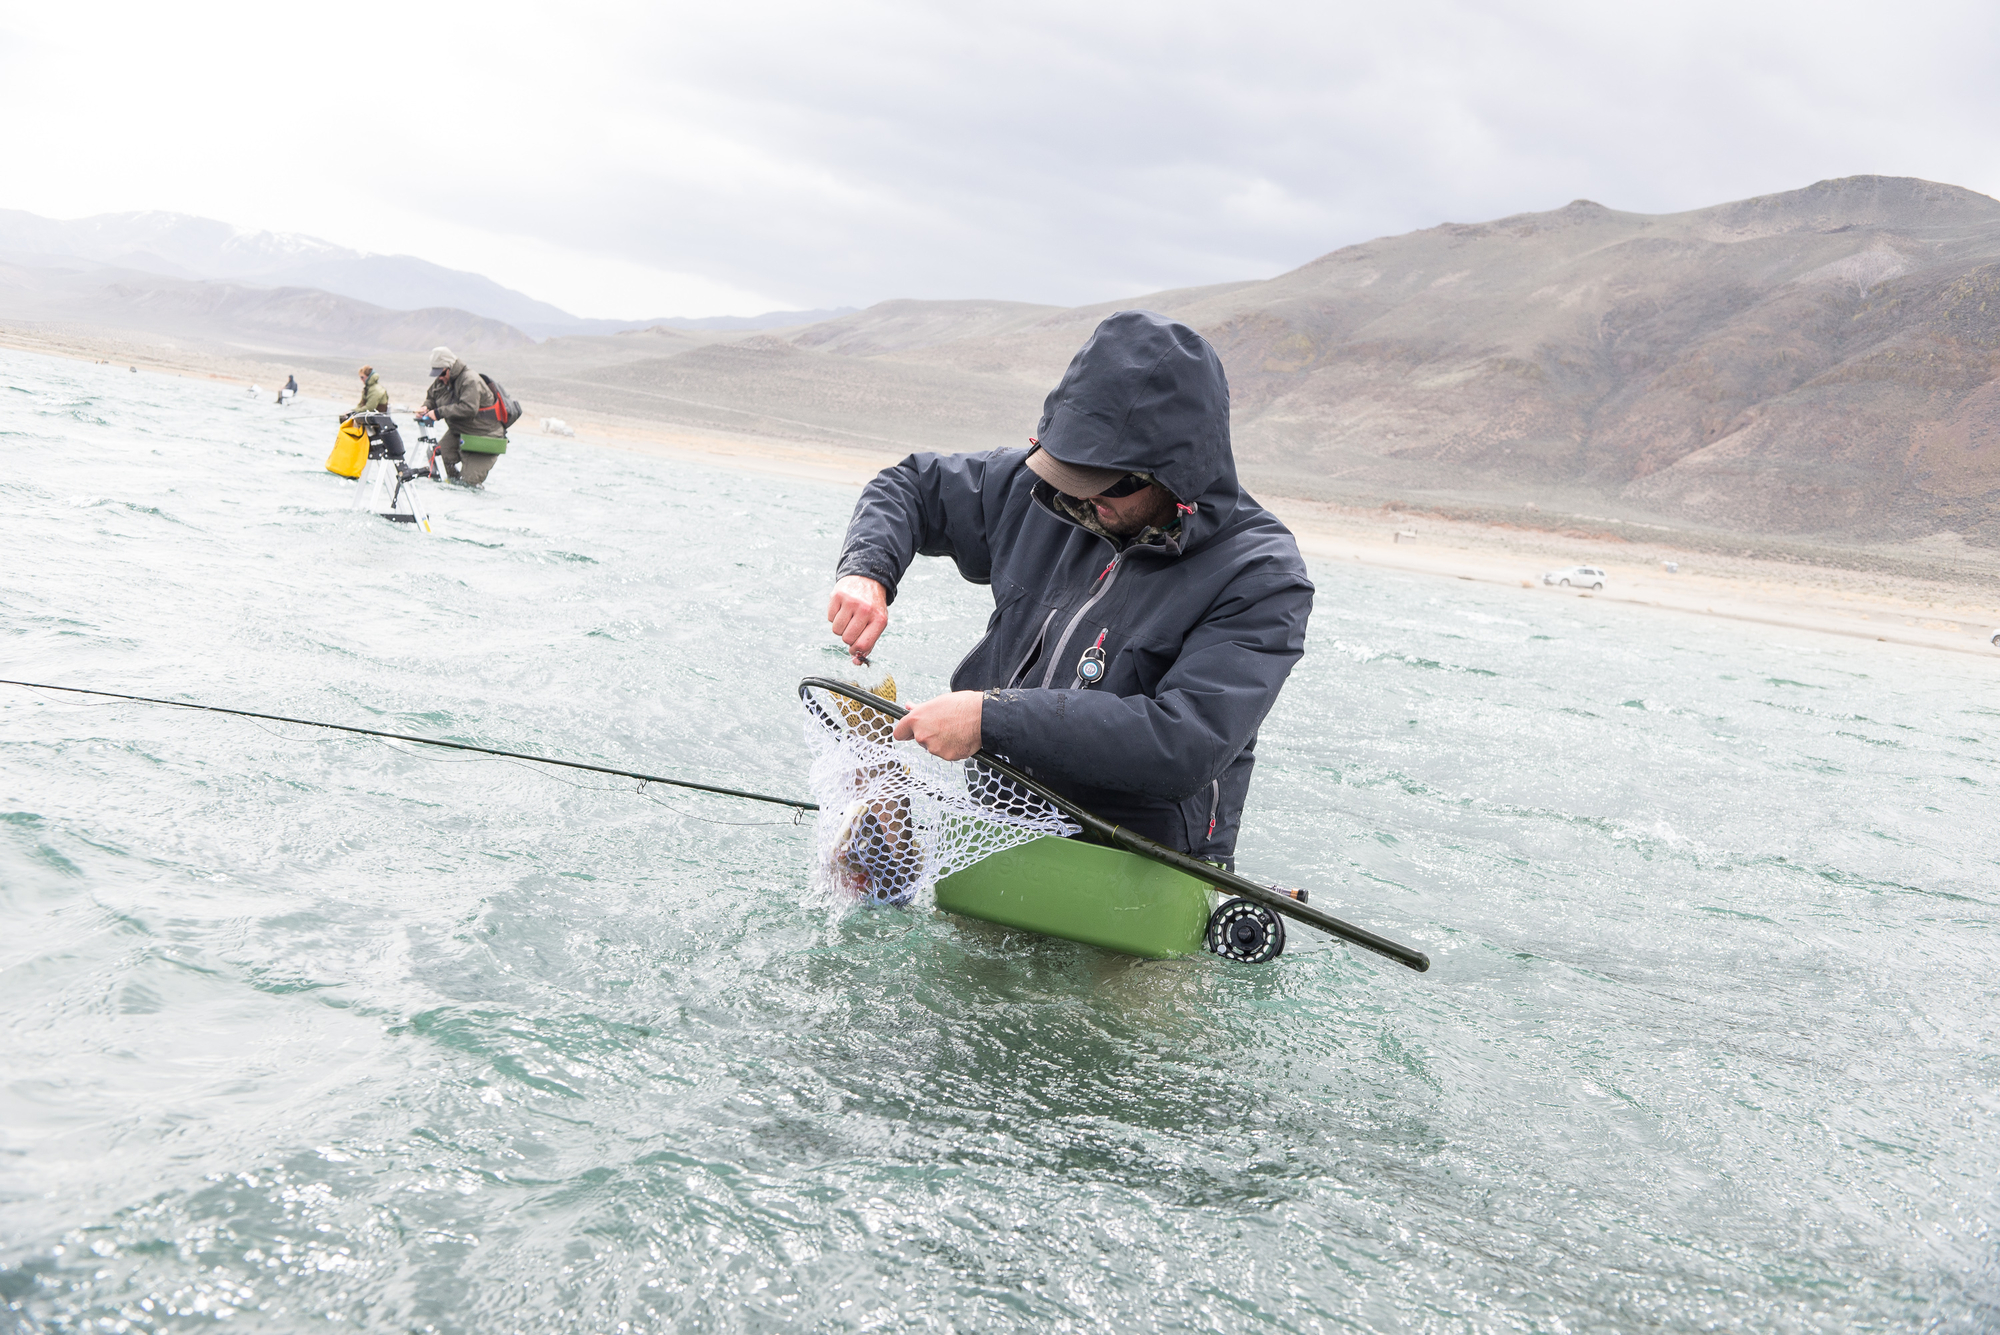 (1/2) Ben Smith, having moved beyond expert level, decided to practice the master level art of catching fish without a rod or flies. Either that, or he dropped his cutthroat before the camera was ready, and decided to try one last grab.